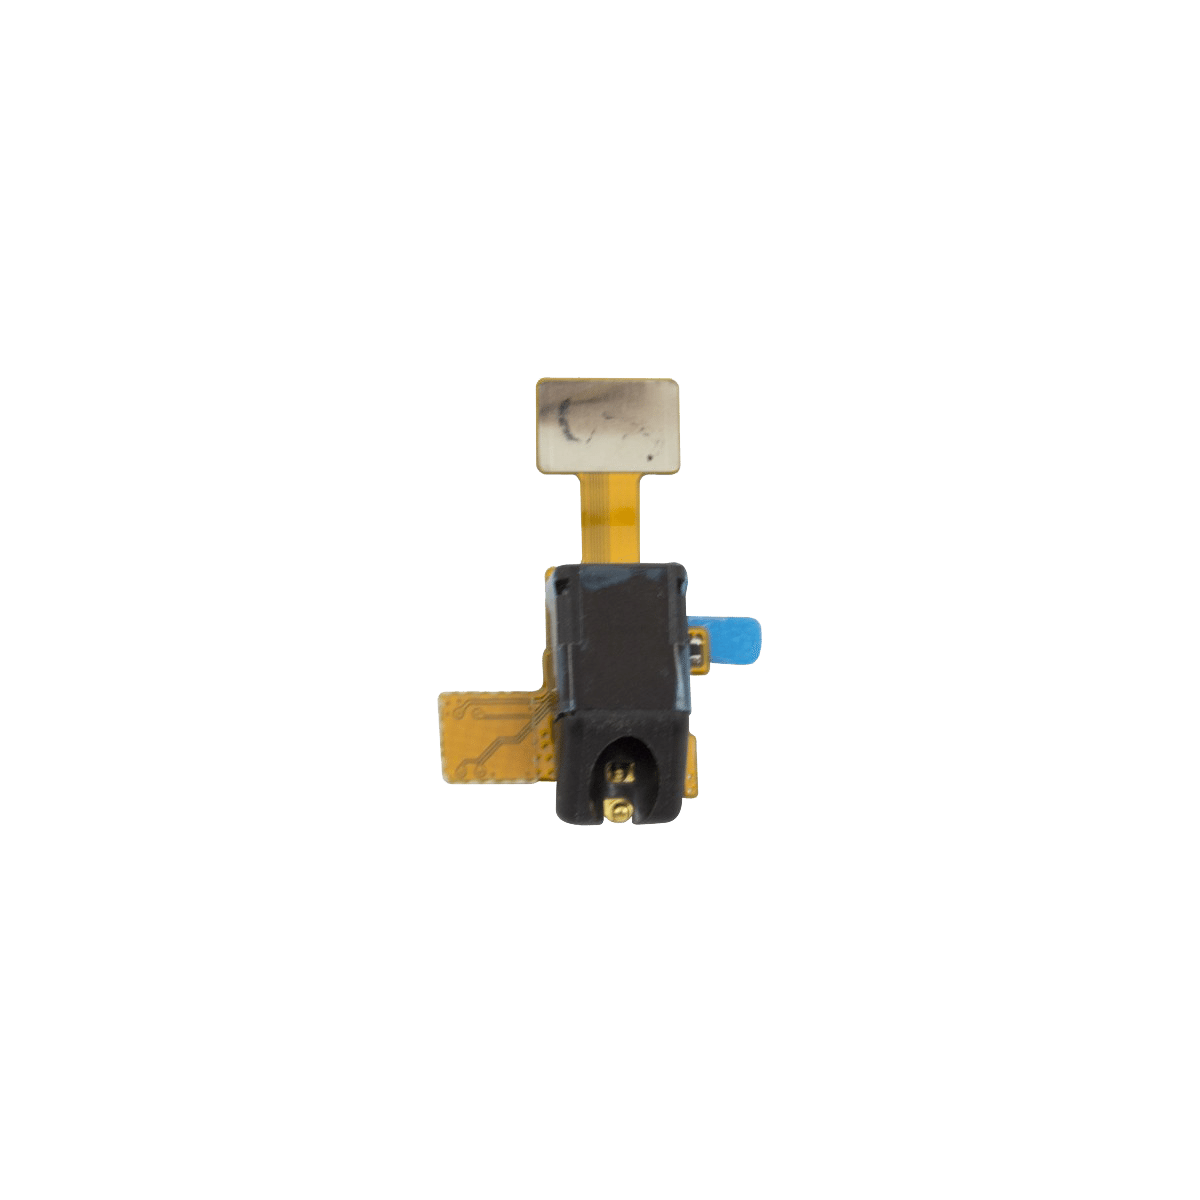 LG Nexus 4 E960 Headphone Jack & Proximity Sensor Flex Cable